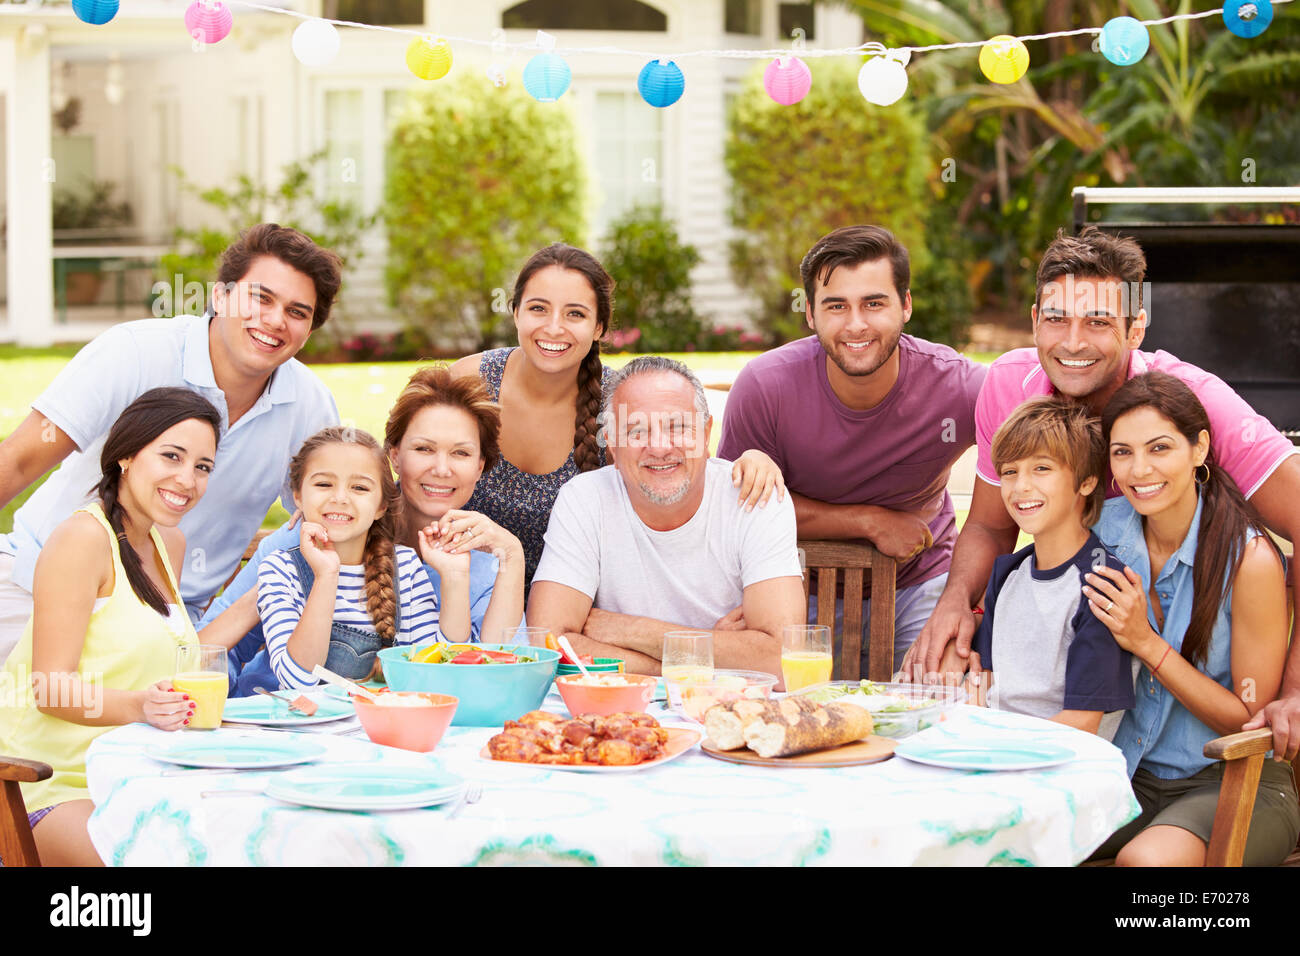 Multi Generation Family Enjoying Meal In Garden Together - Stock Image